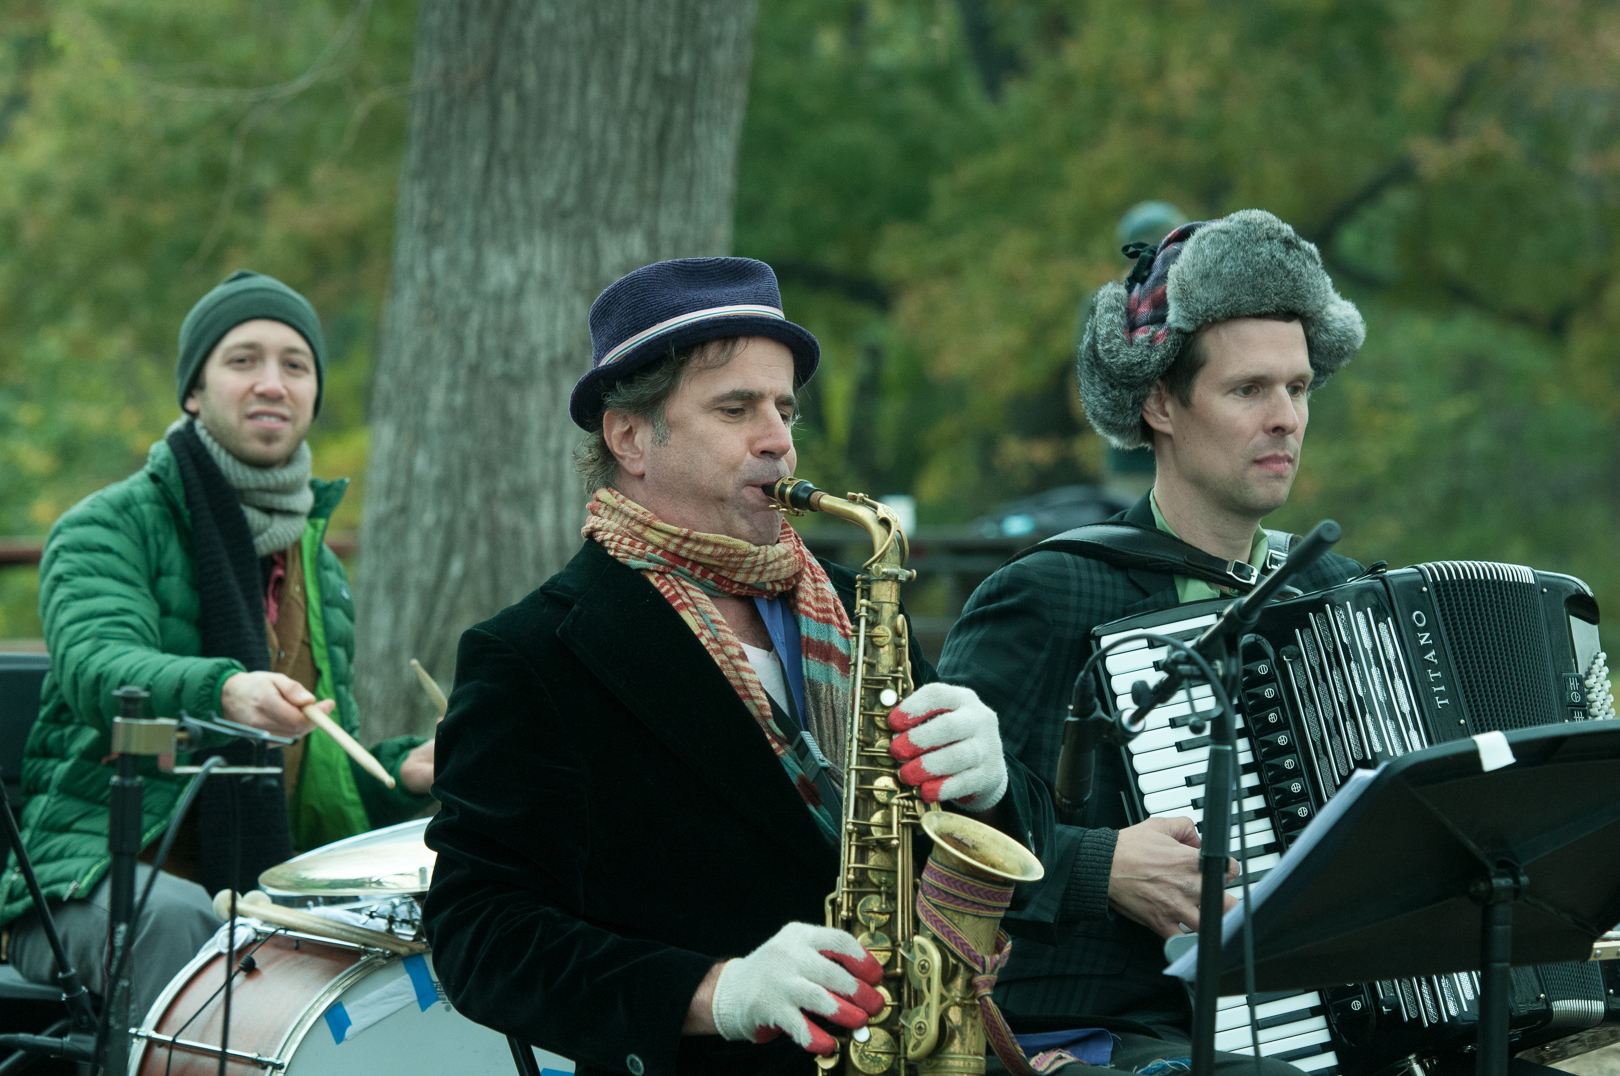 Richie Barshay, Matt Dariau and Will Holshouser WTH the Klezmatics at Jazz and Colors in Central Park